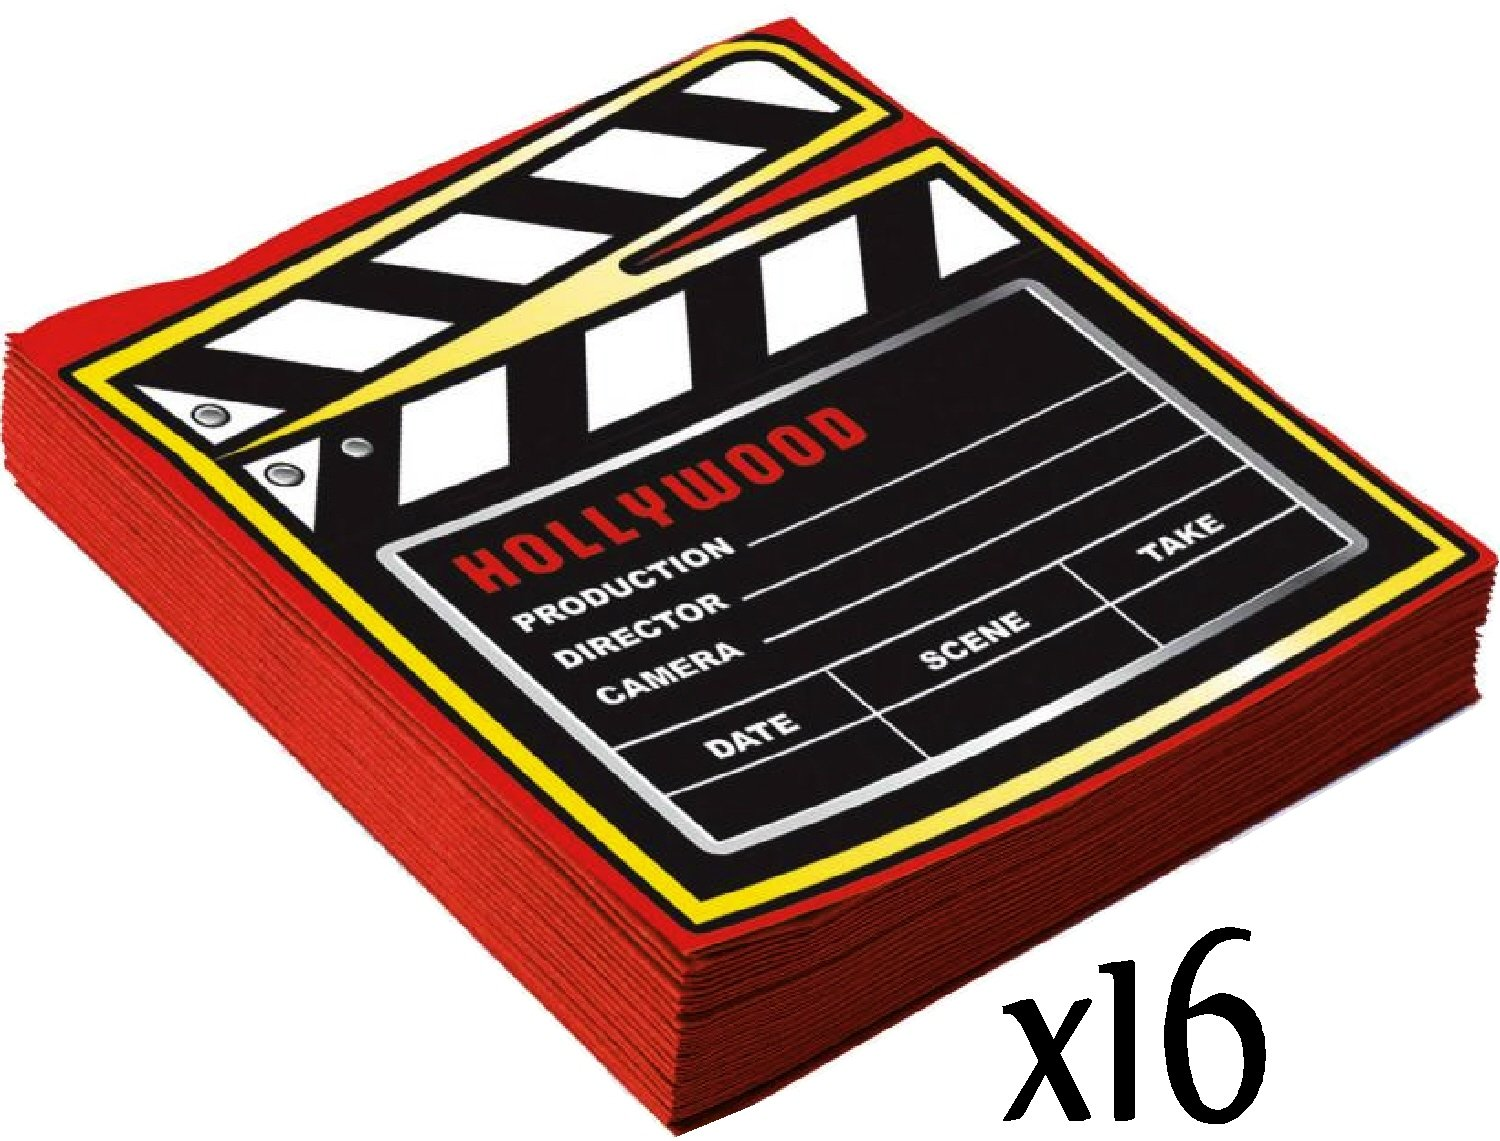 Includes 16 Large Plates 16 Small Plates Perfect for Movie Night or Birthday 16 Cups /& 2 Table Covers 16 Napkins HollywoodAt The Movies Theme Party Supplies Pack for 16 People